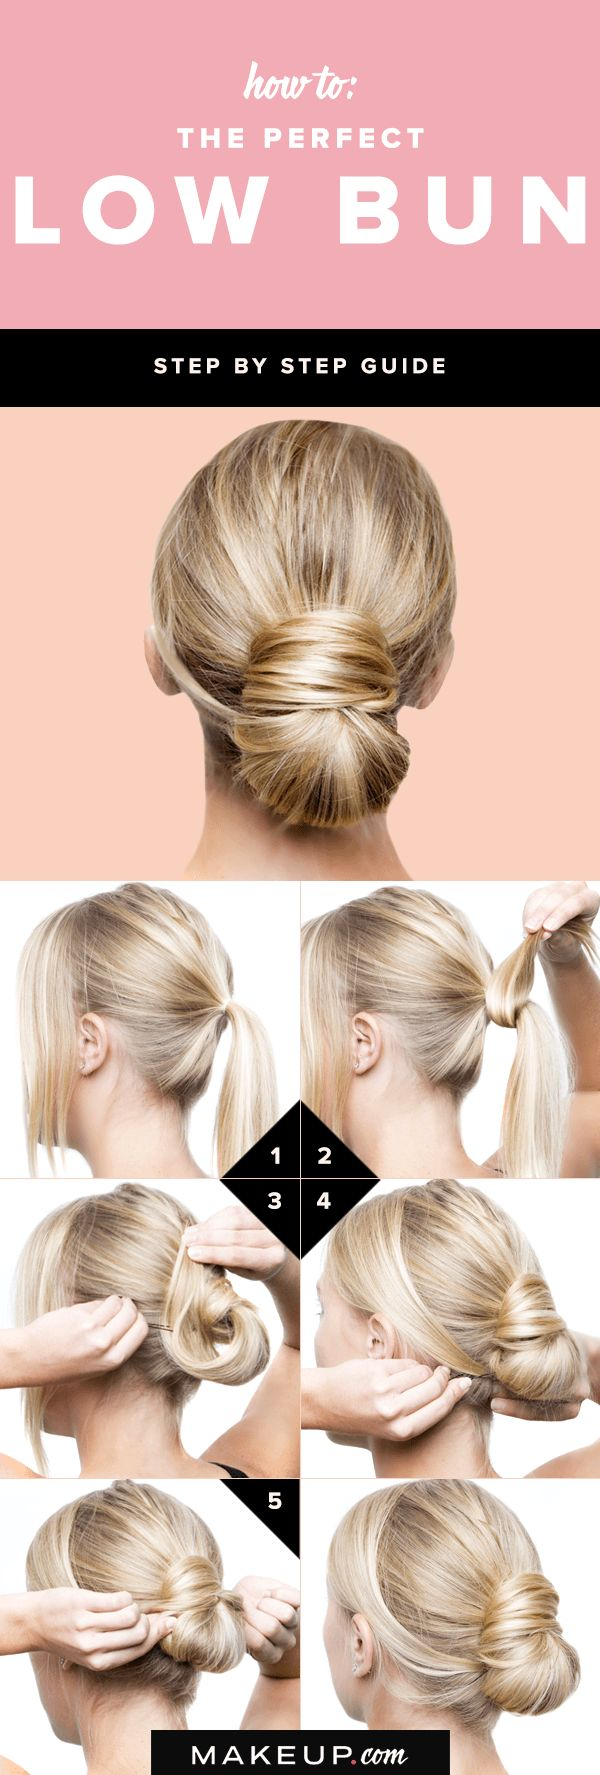 perfect hair bun tutorial